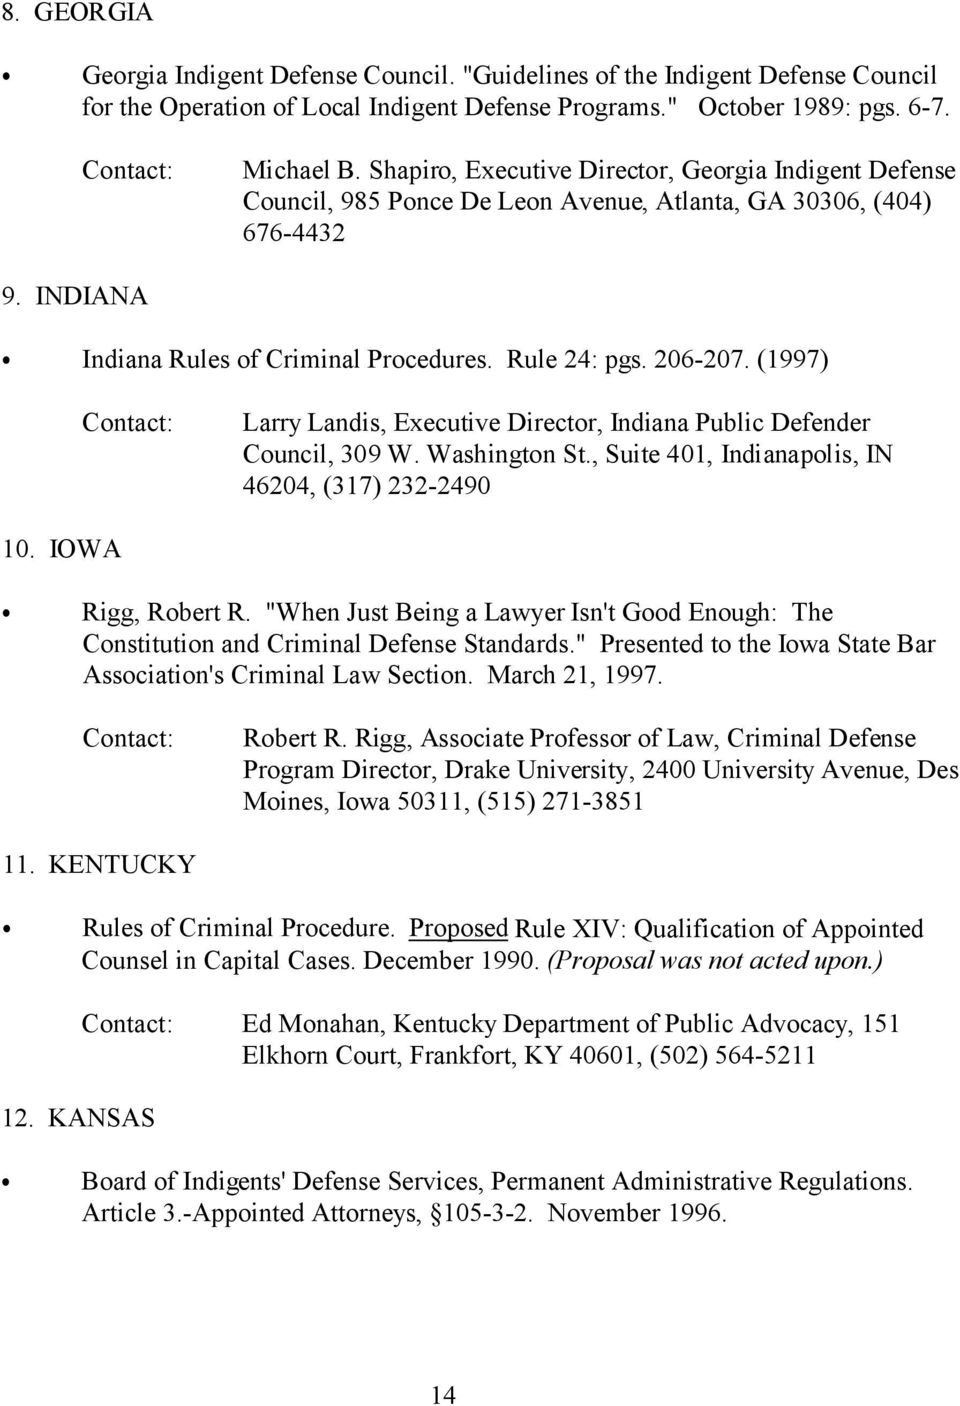 (1997) Larry Landis, Executive Director, Indiana Public Defender ouncil, 309 W. Washington St., Suite 401, Indianapolis, IN 46204, (317) 232-2490 10. IOWA Rigg, Robert R.